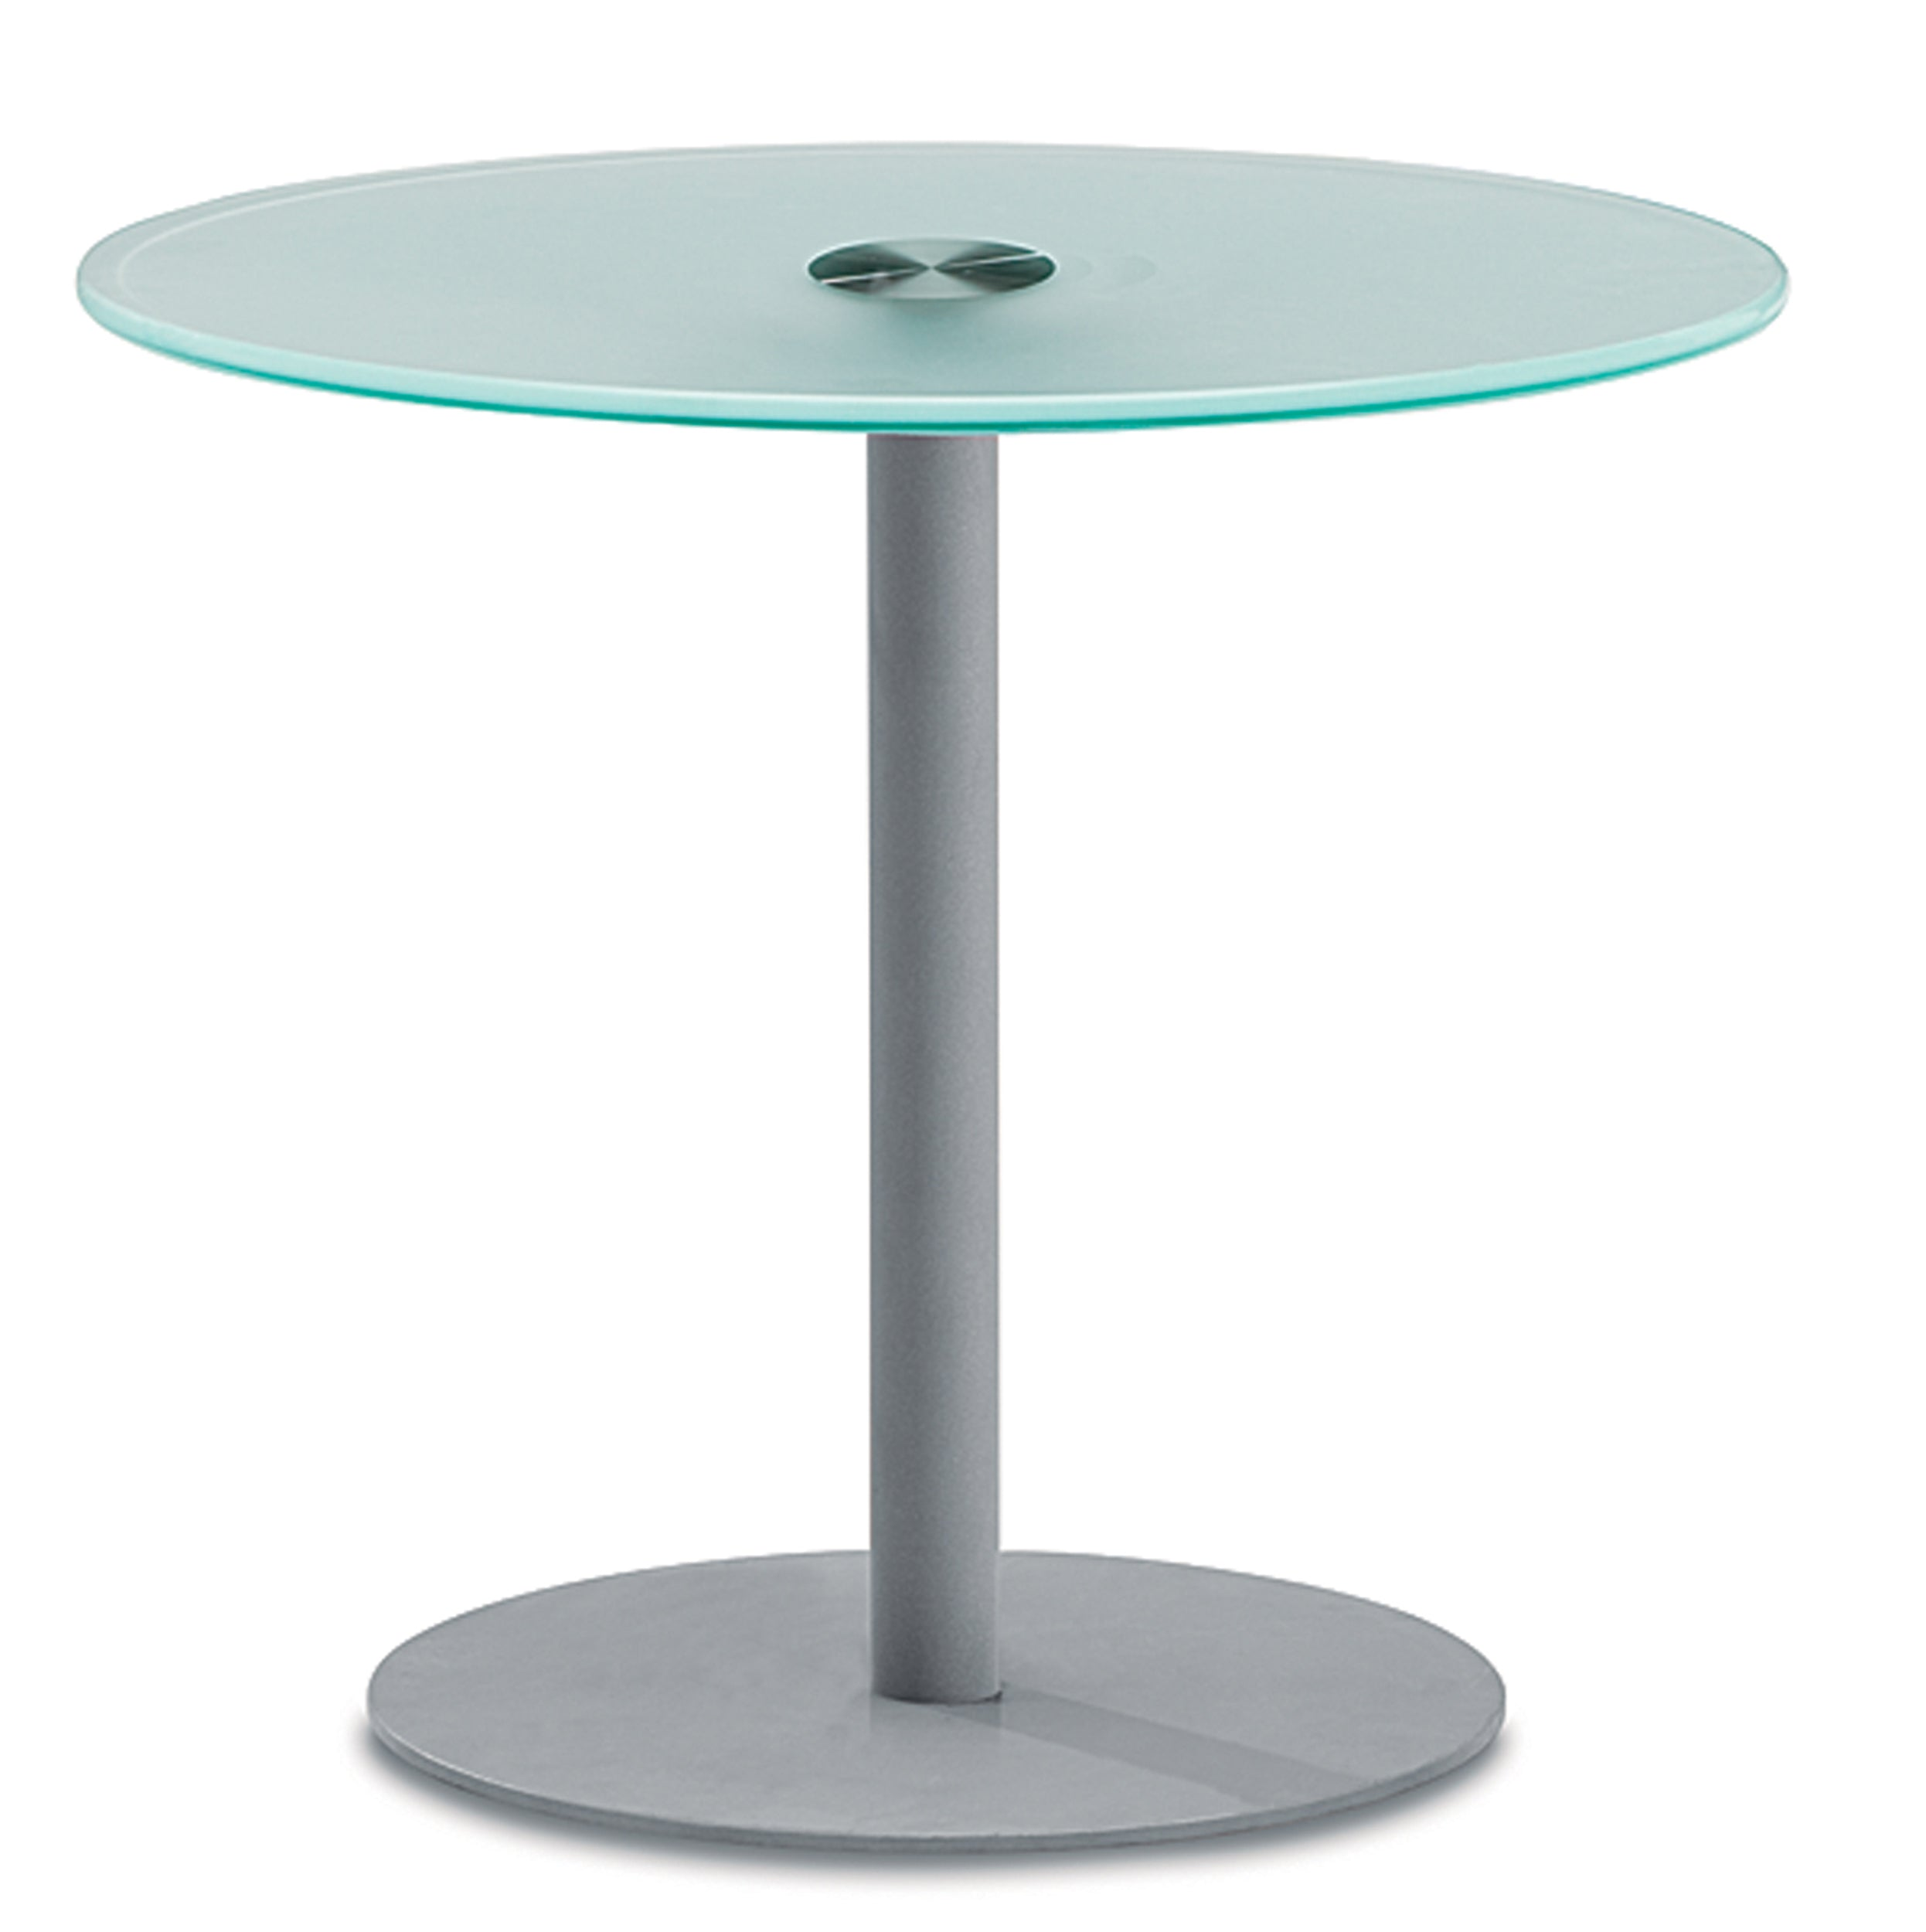 Ofminc Model NGT-1 - NET Series Large Glass Table